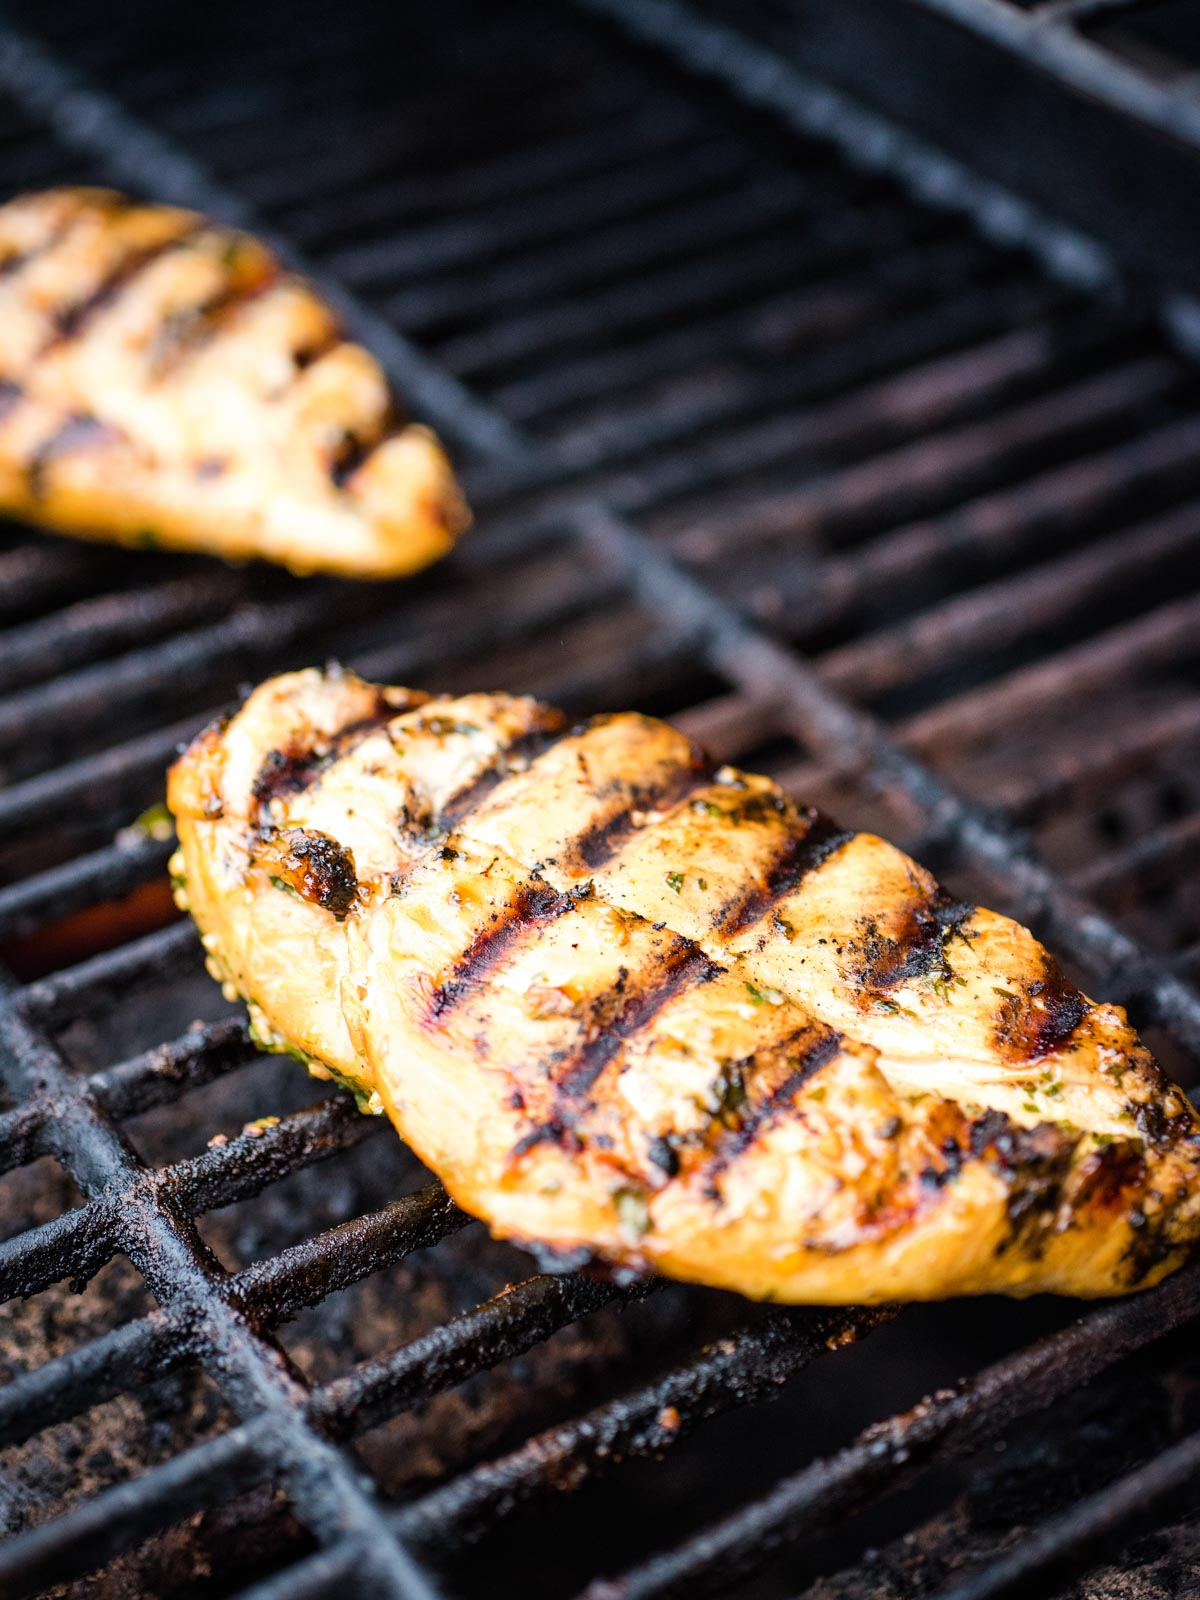 cooked chicken on grill showing grill marks